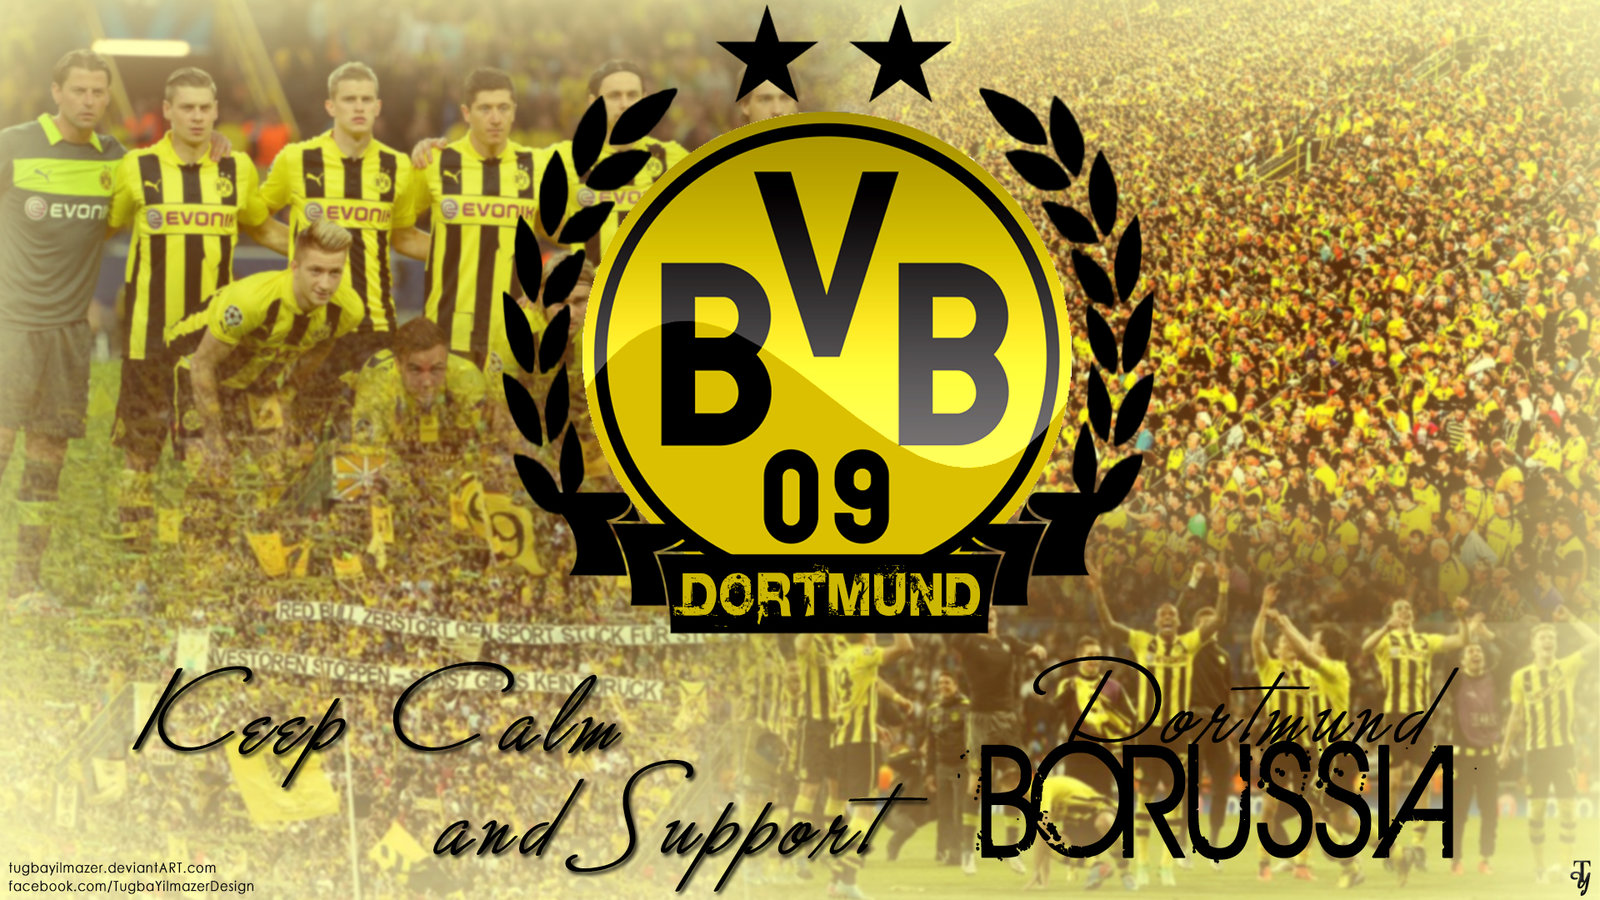 Borussia Dortmund Wallpaper Android 2015